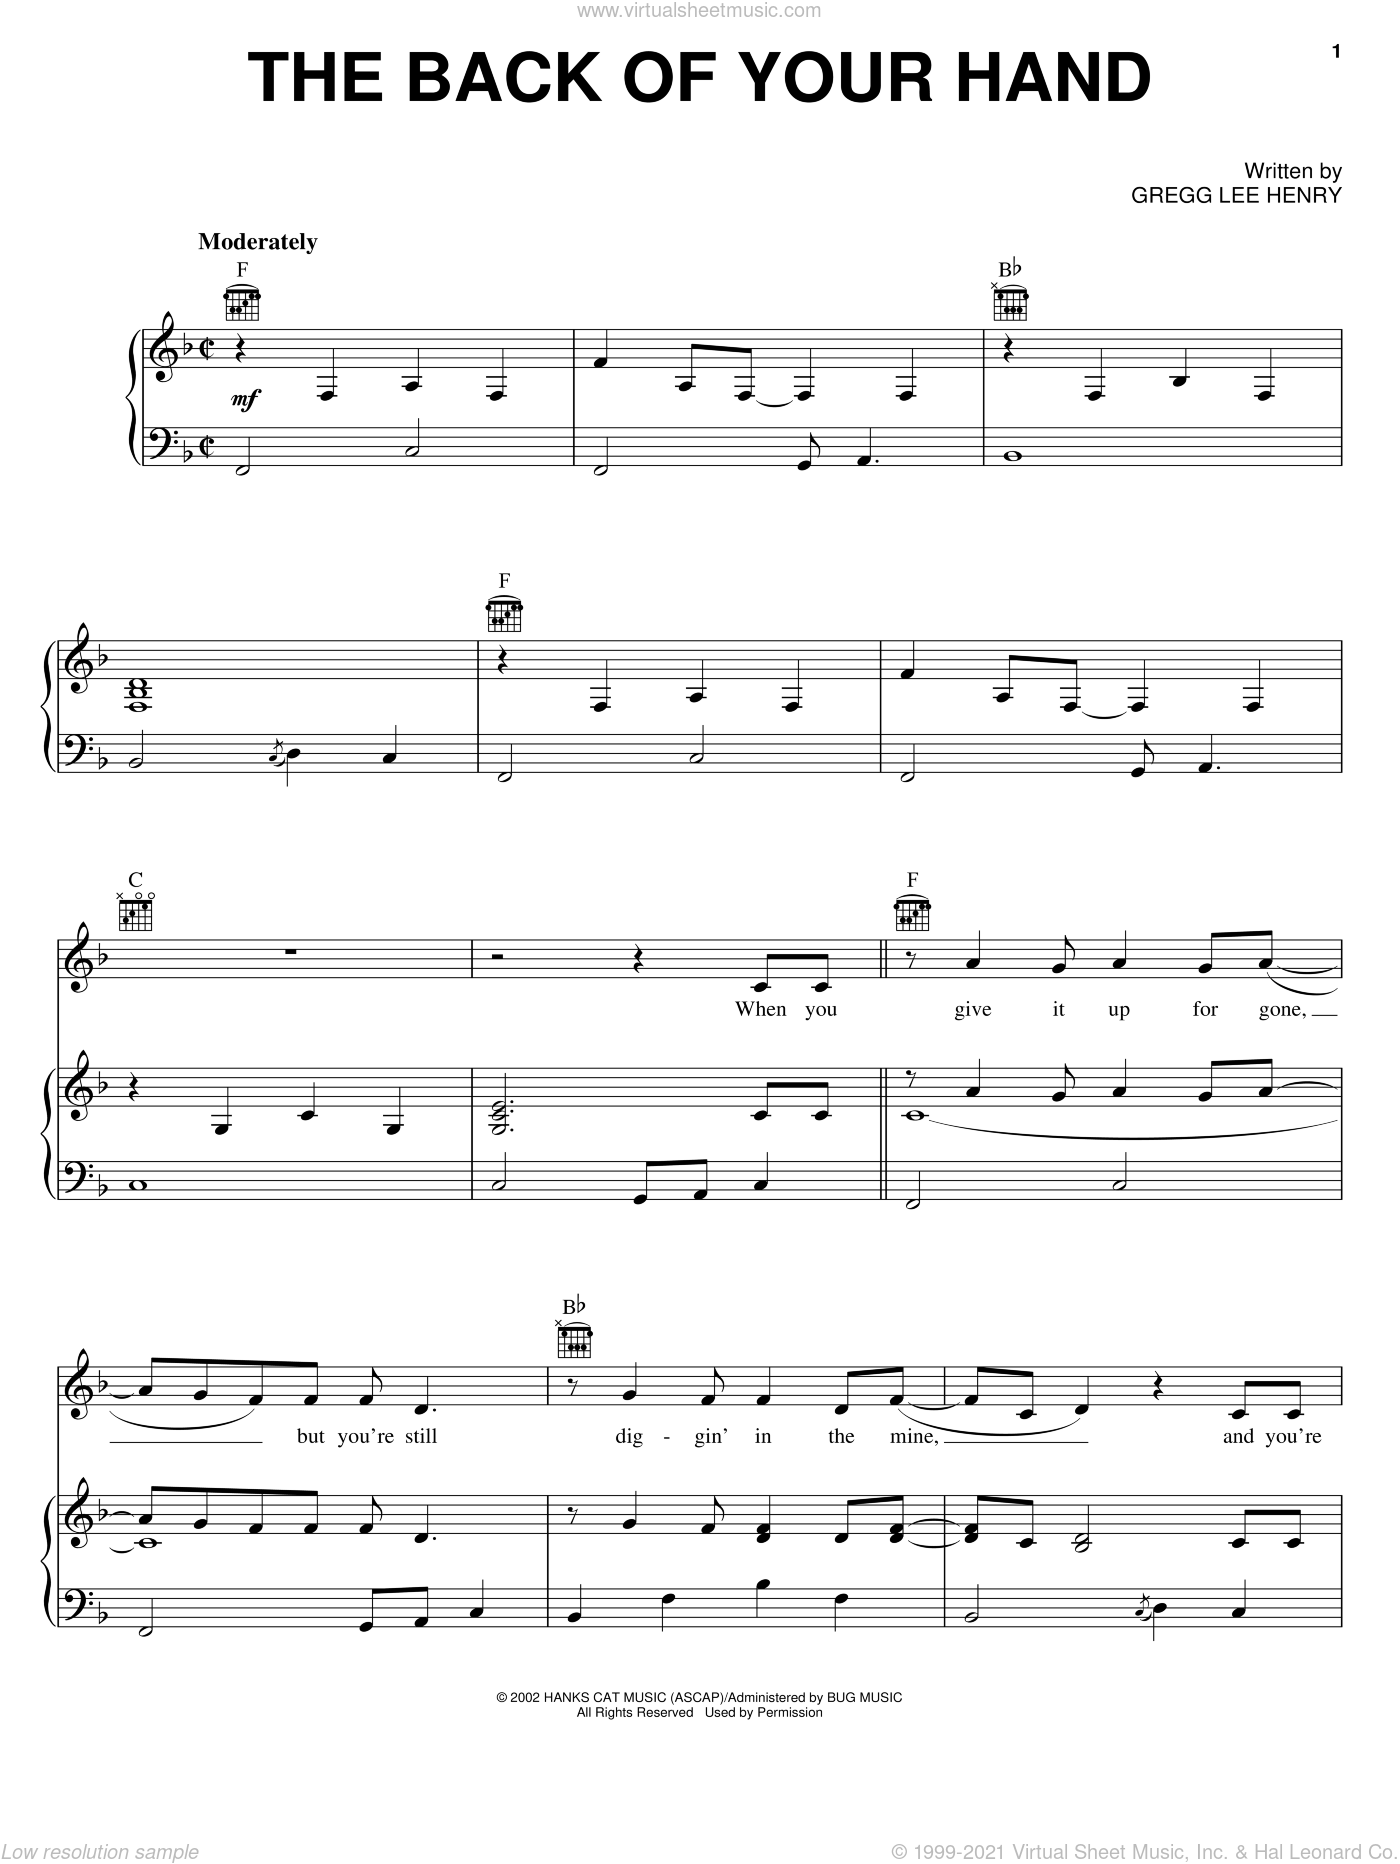 The Back Of Your Hand sheet music for voice, piano or guitar by Gregg Lee Henry and Dwight Yoakam. Score Image Preview.